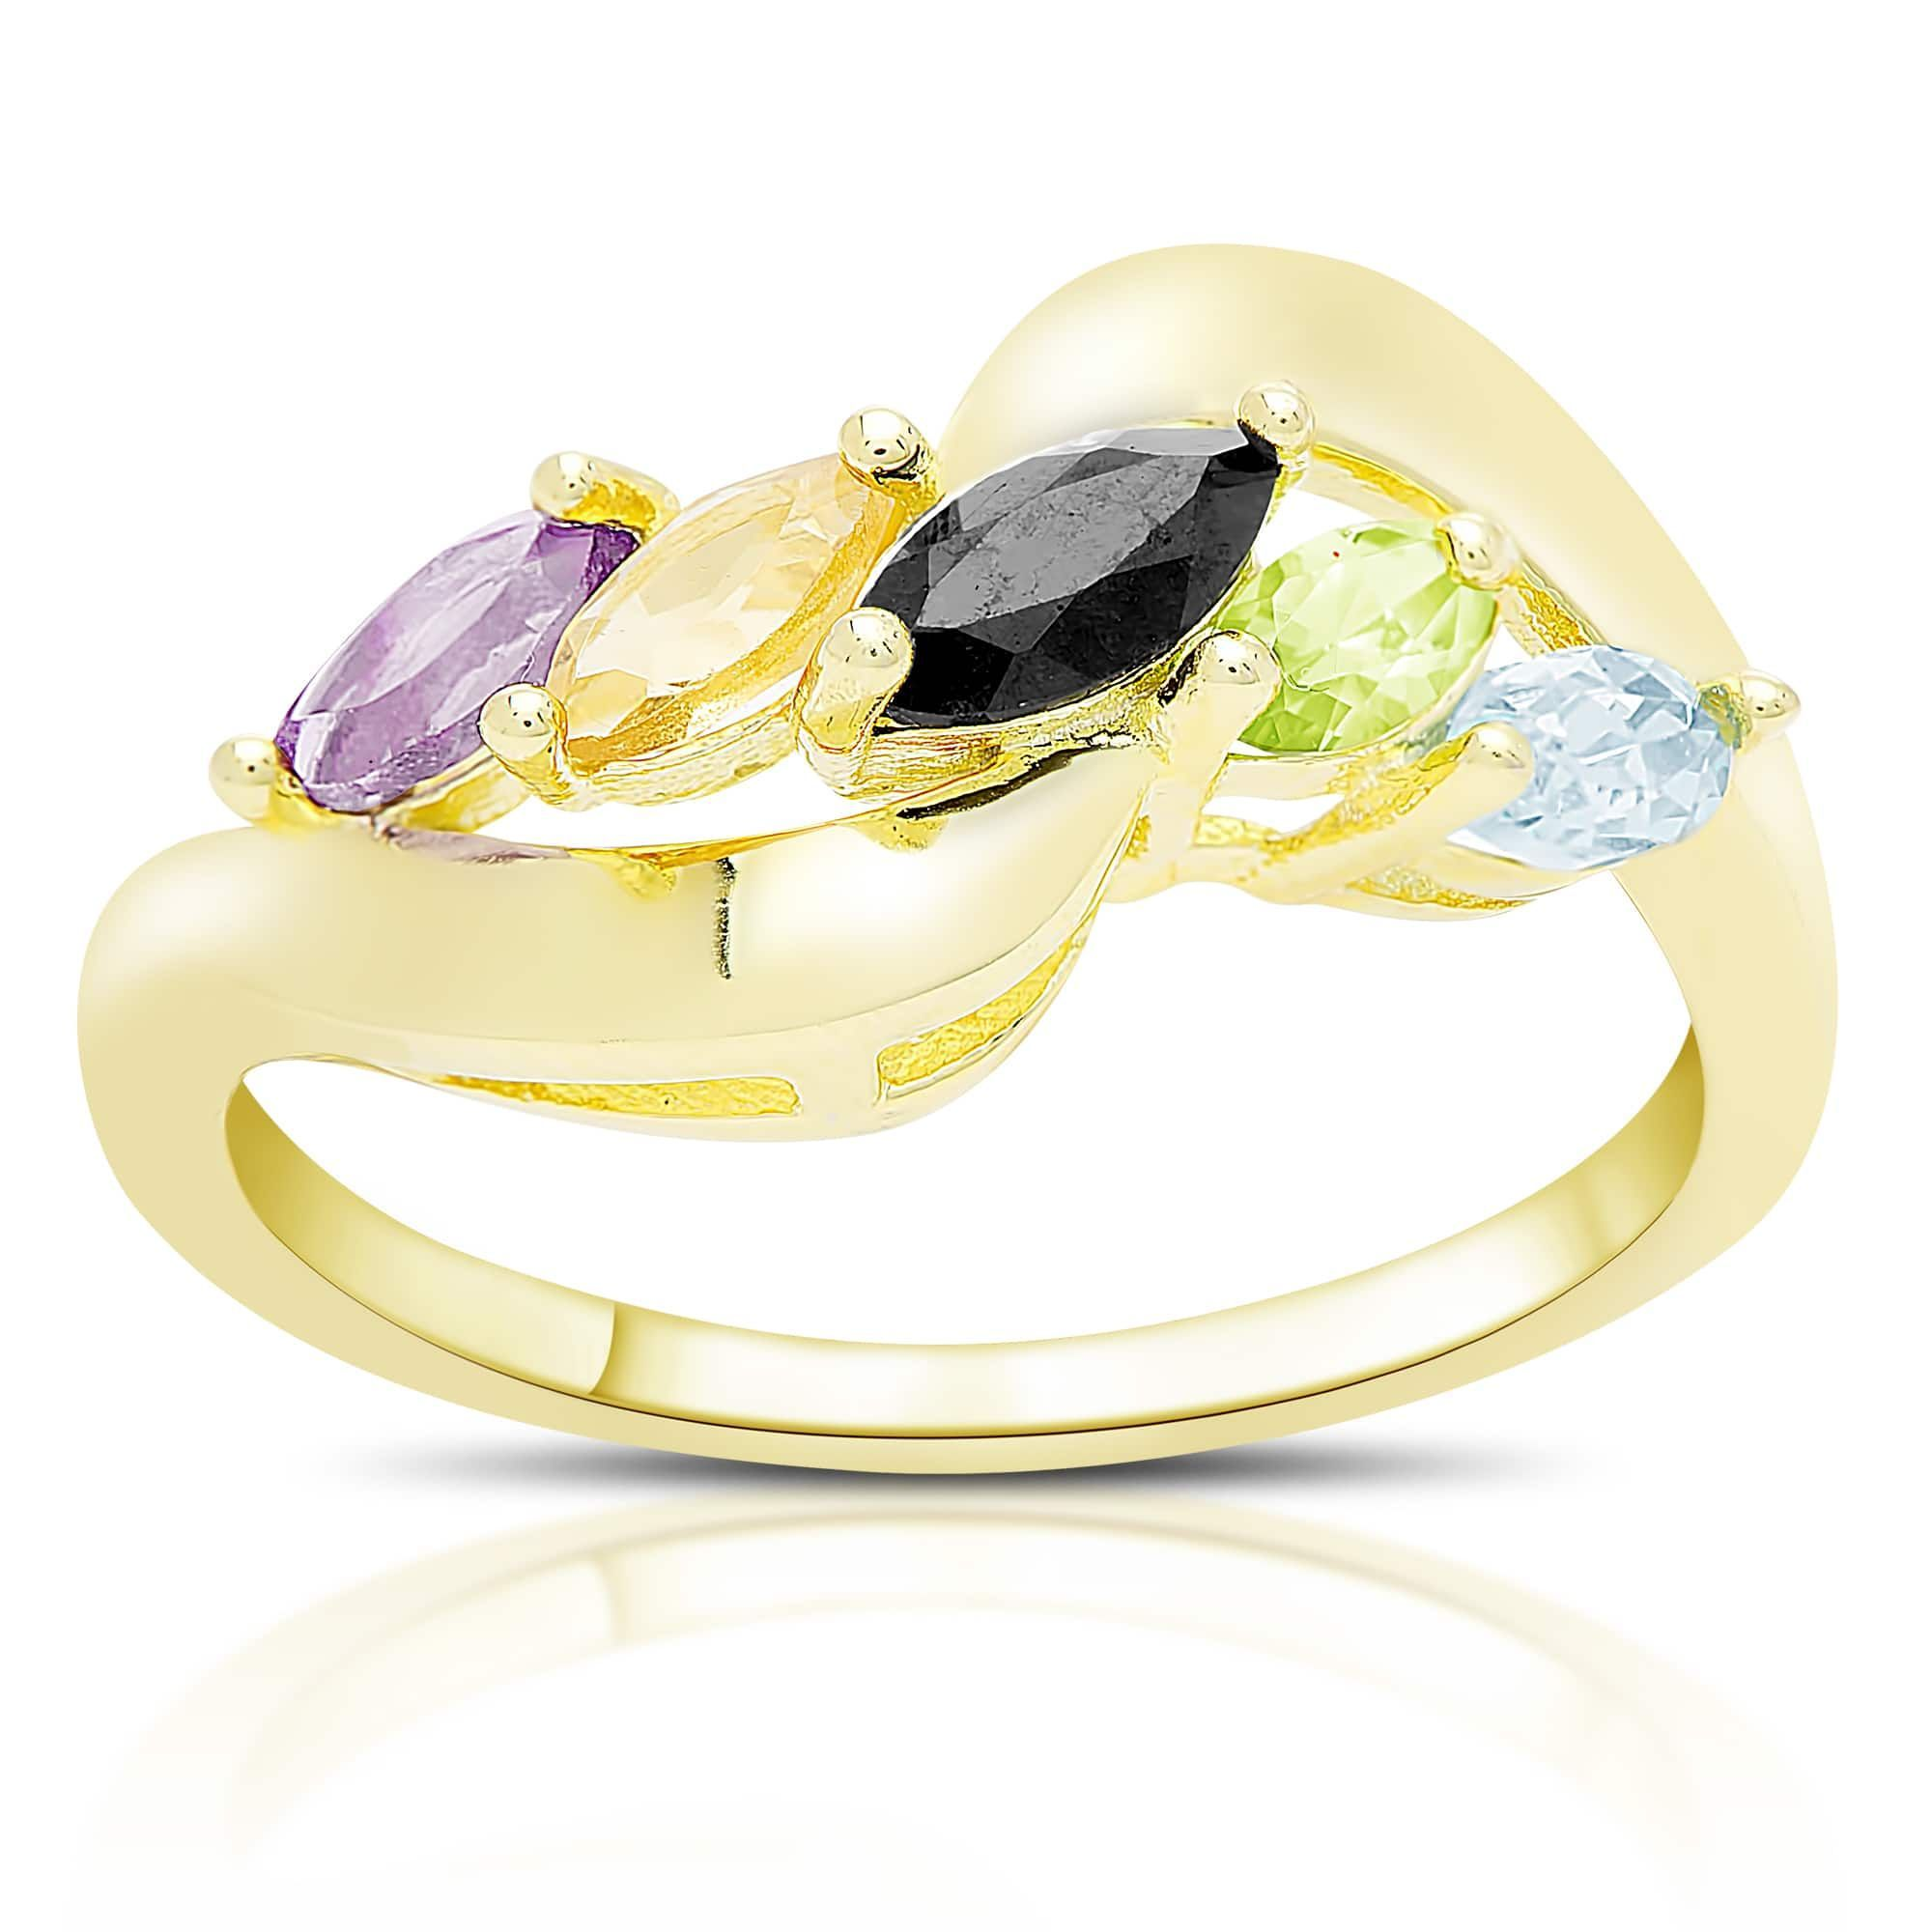 gold carat in collection green asymmetric goldsmiths gemstone mccaul garnet and diamond ring marquise